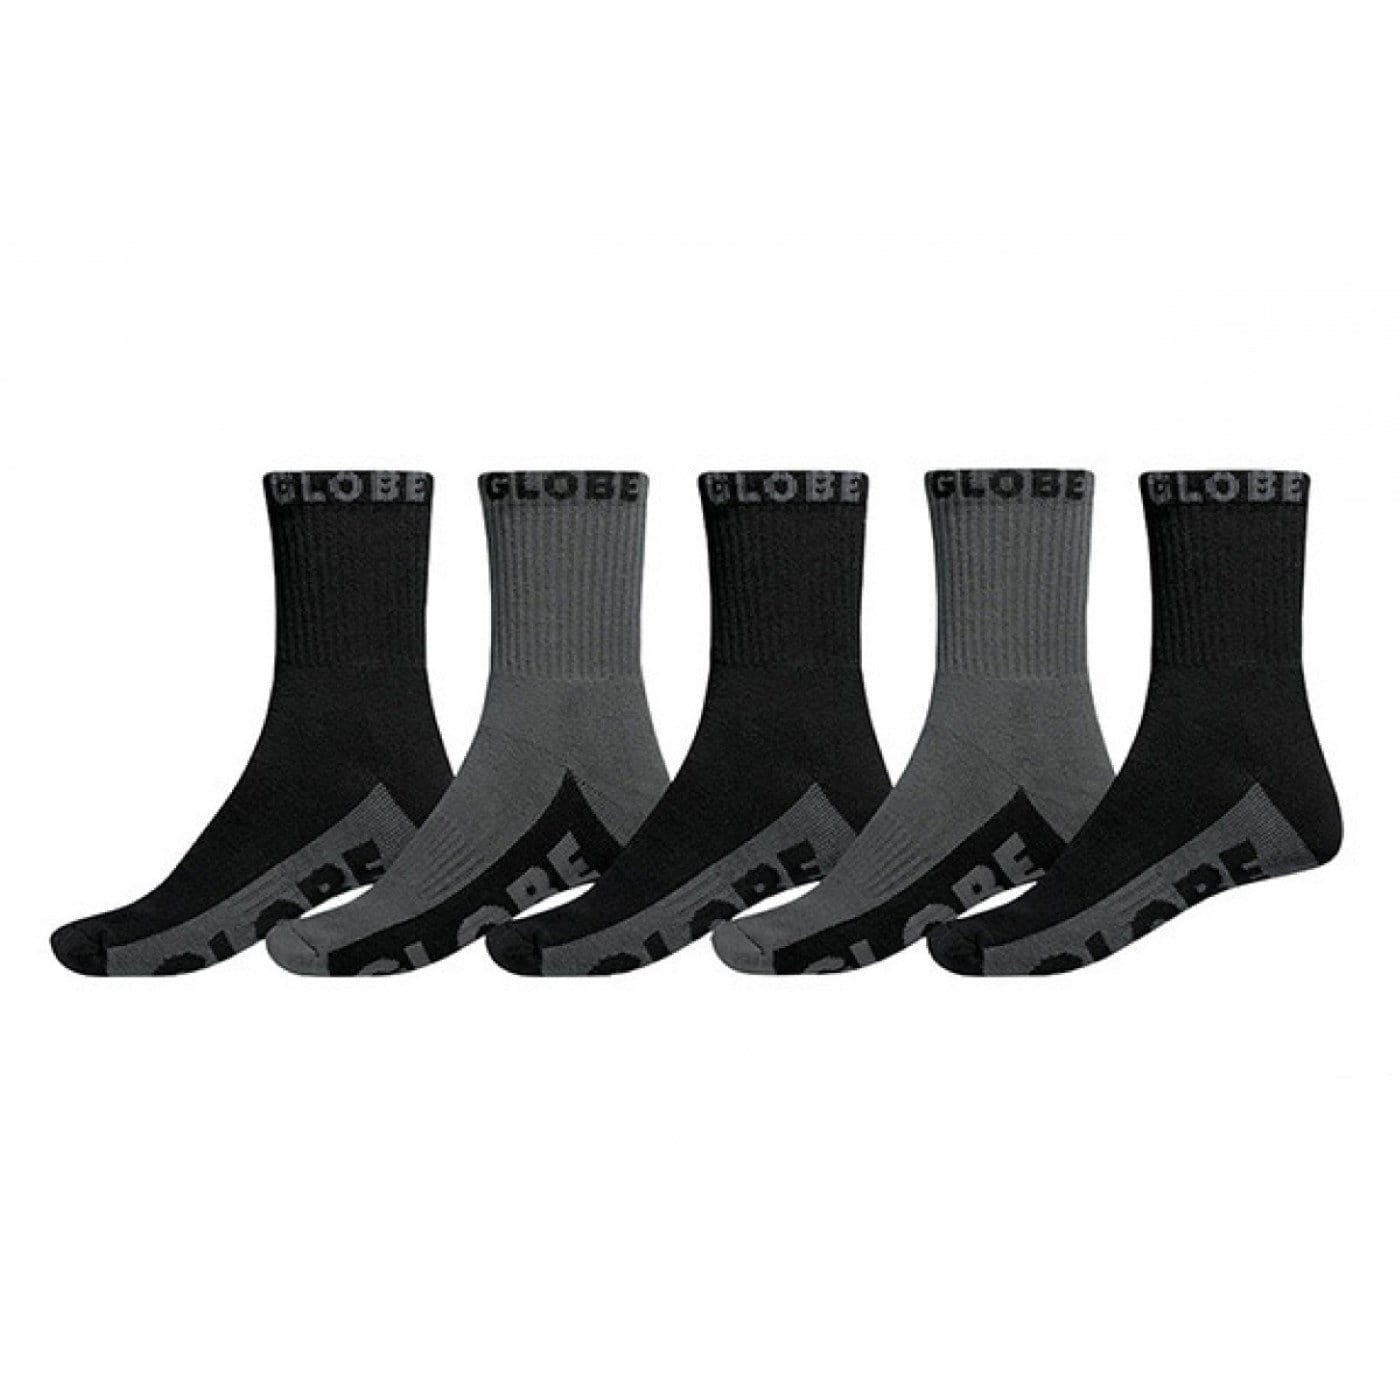 Crew Sock 5 Pack Black Grey